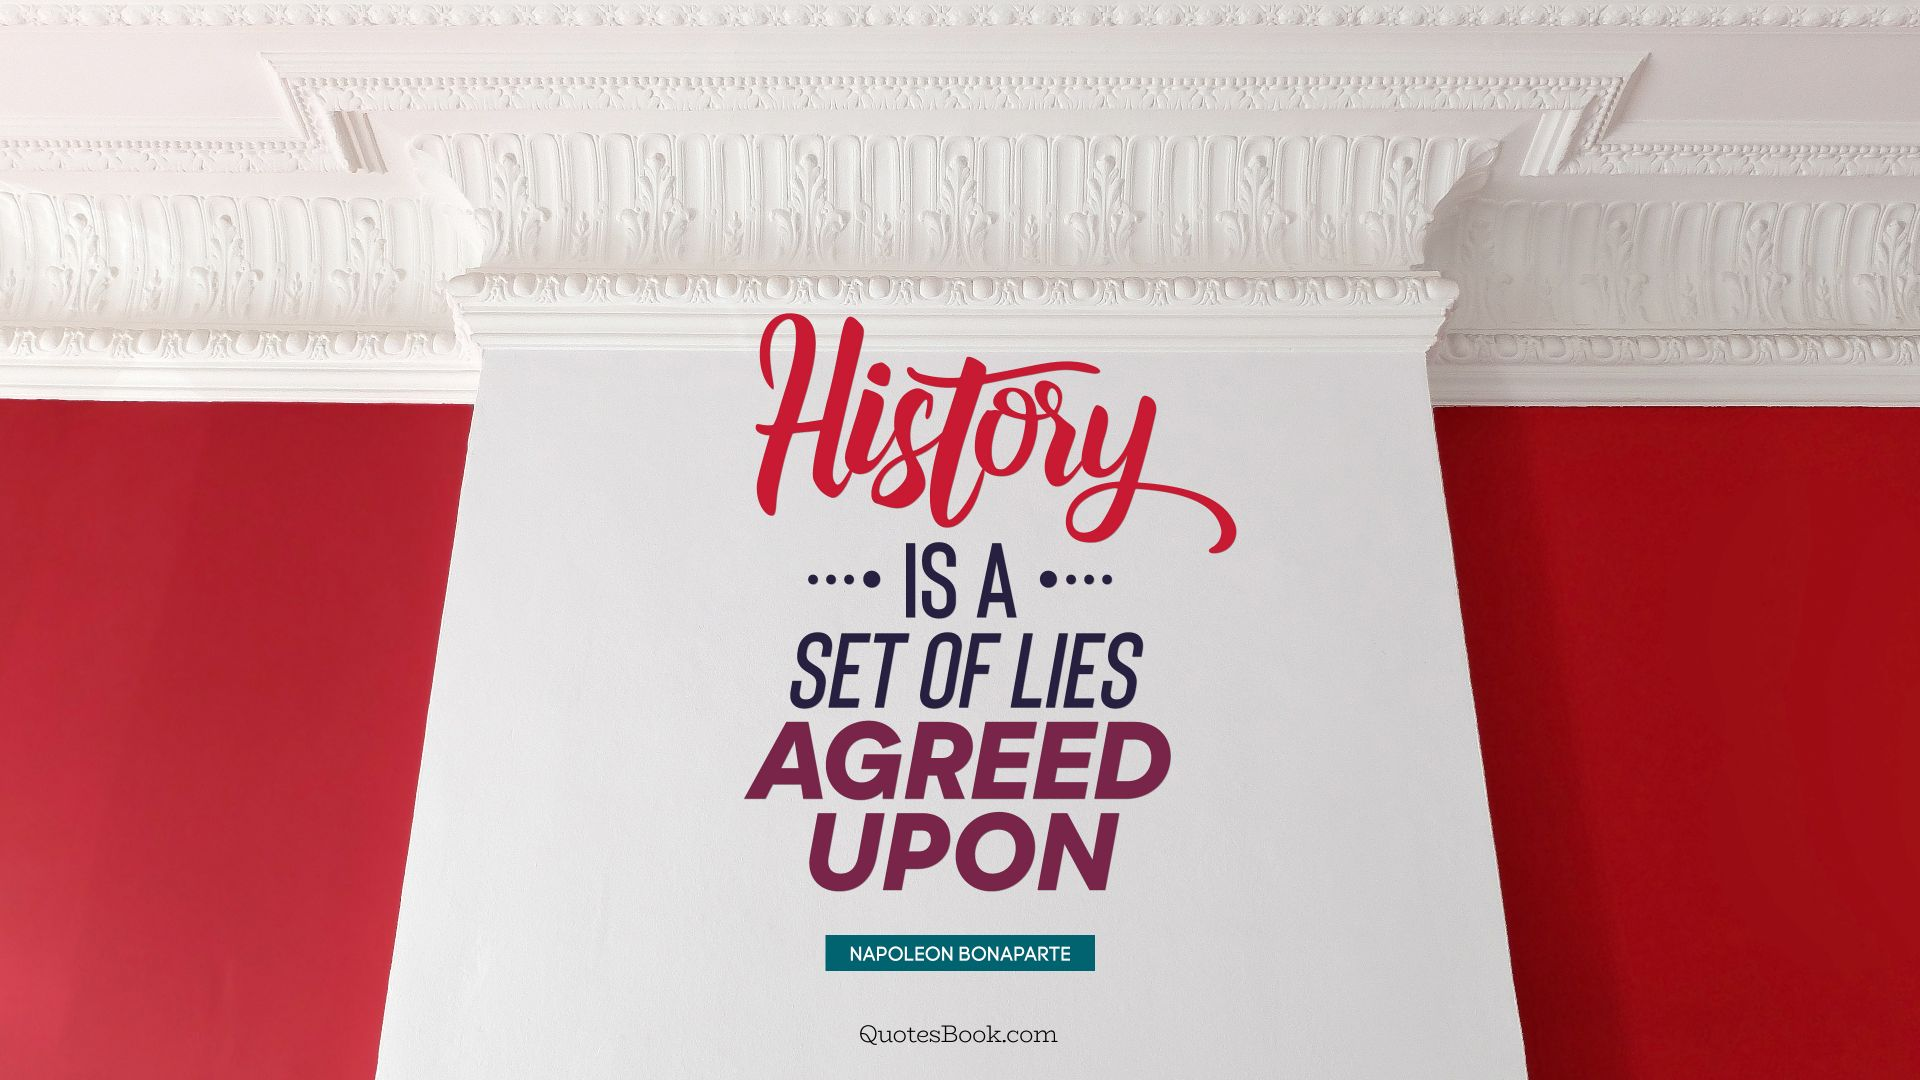 History is a set of lies agreed upon. - Quote by Napoleon Bonaparte